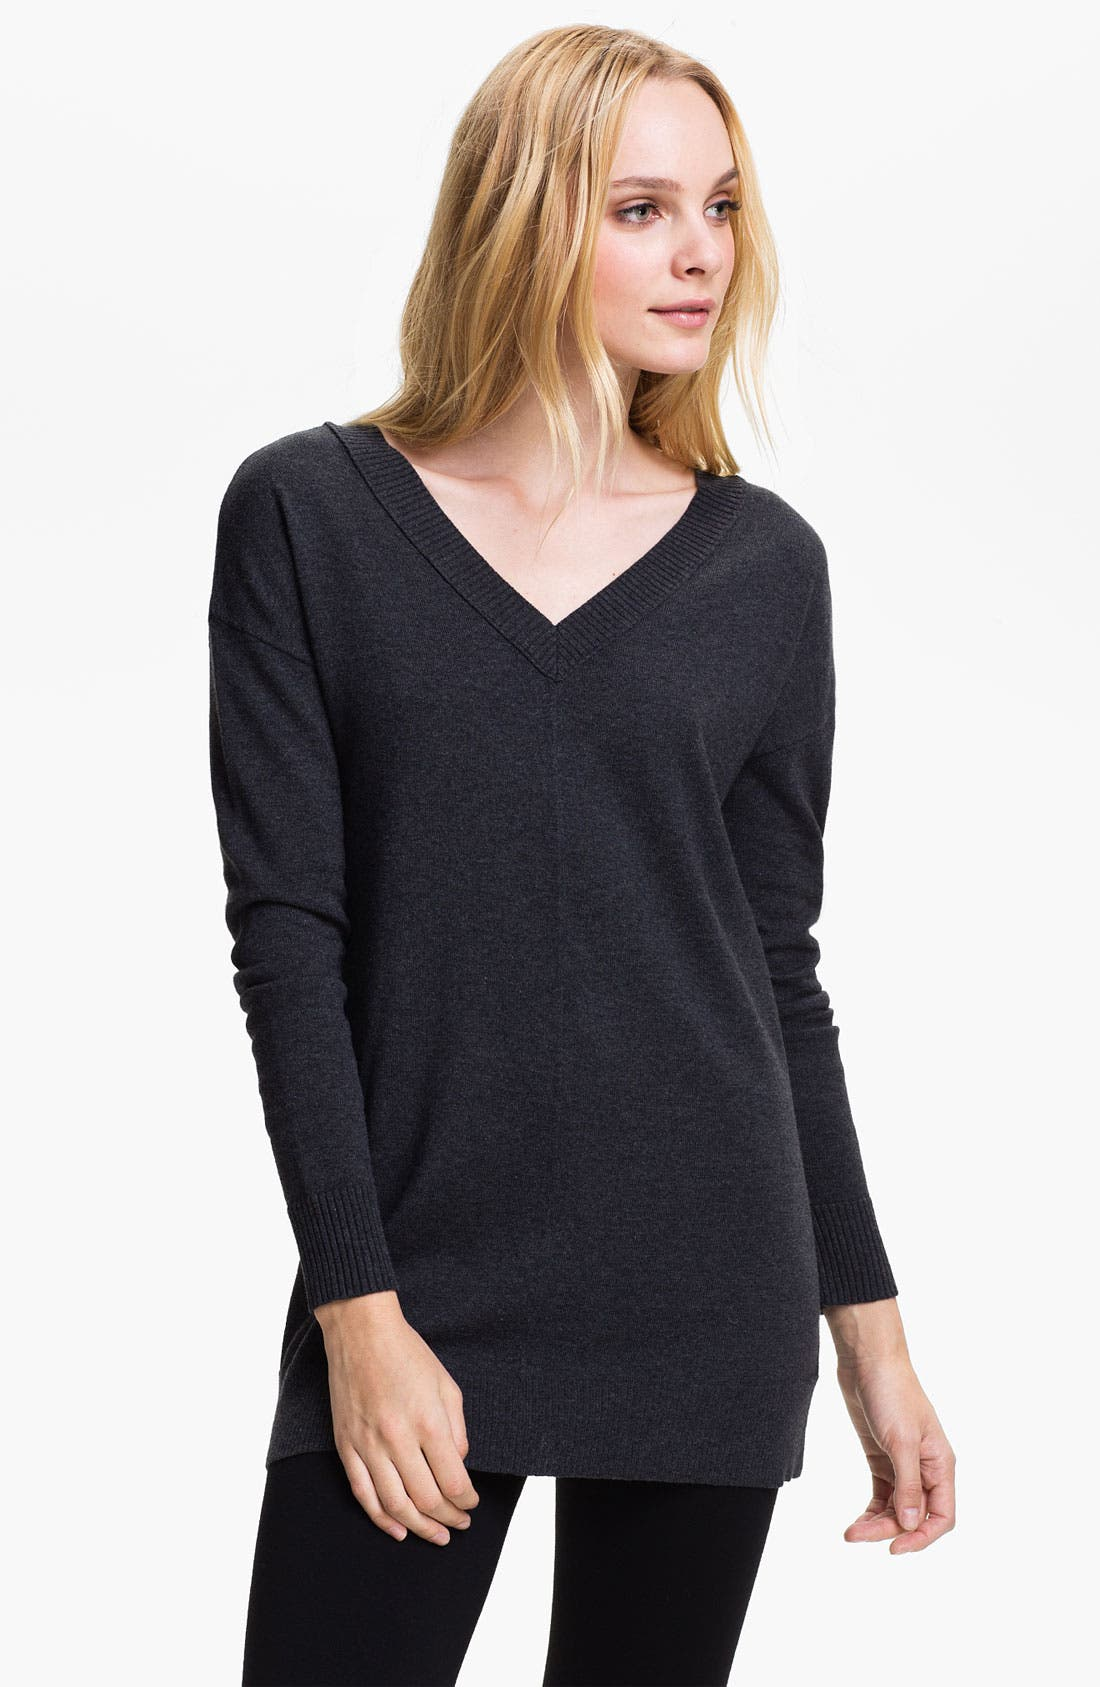 Alternate Image 1 Selected - Caslon Double V-Neck Tunic Sweater (Petite)